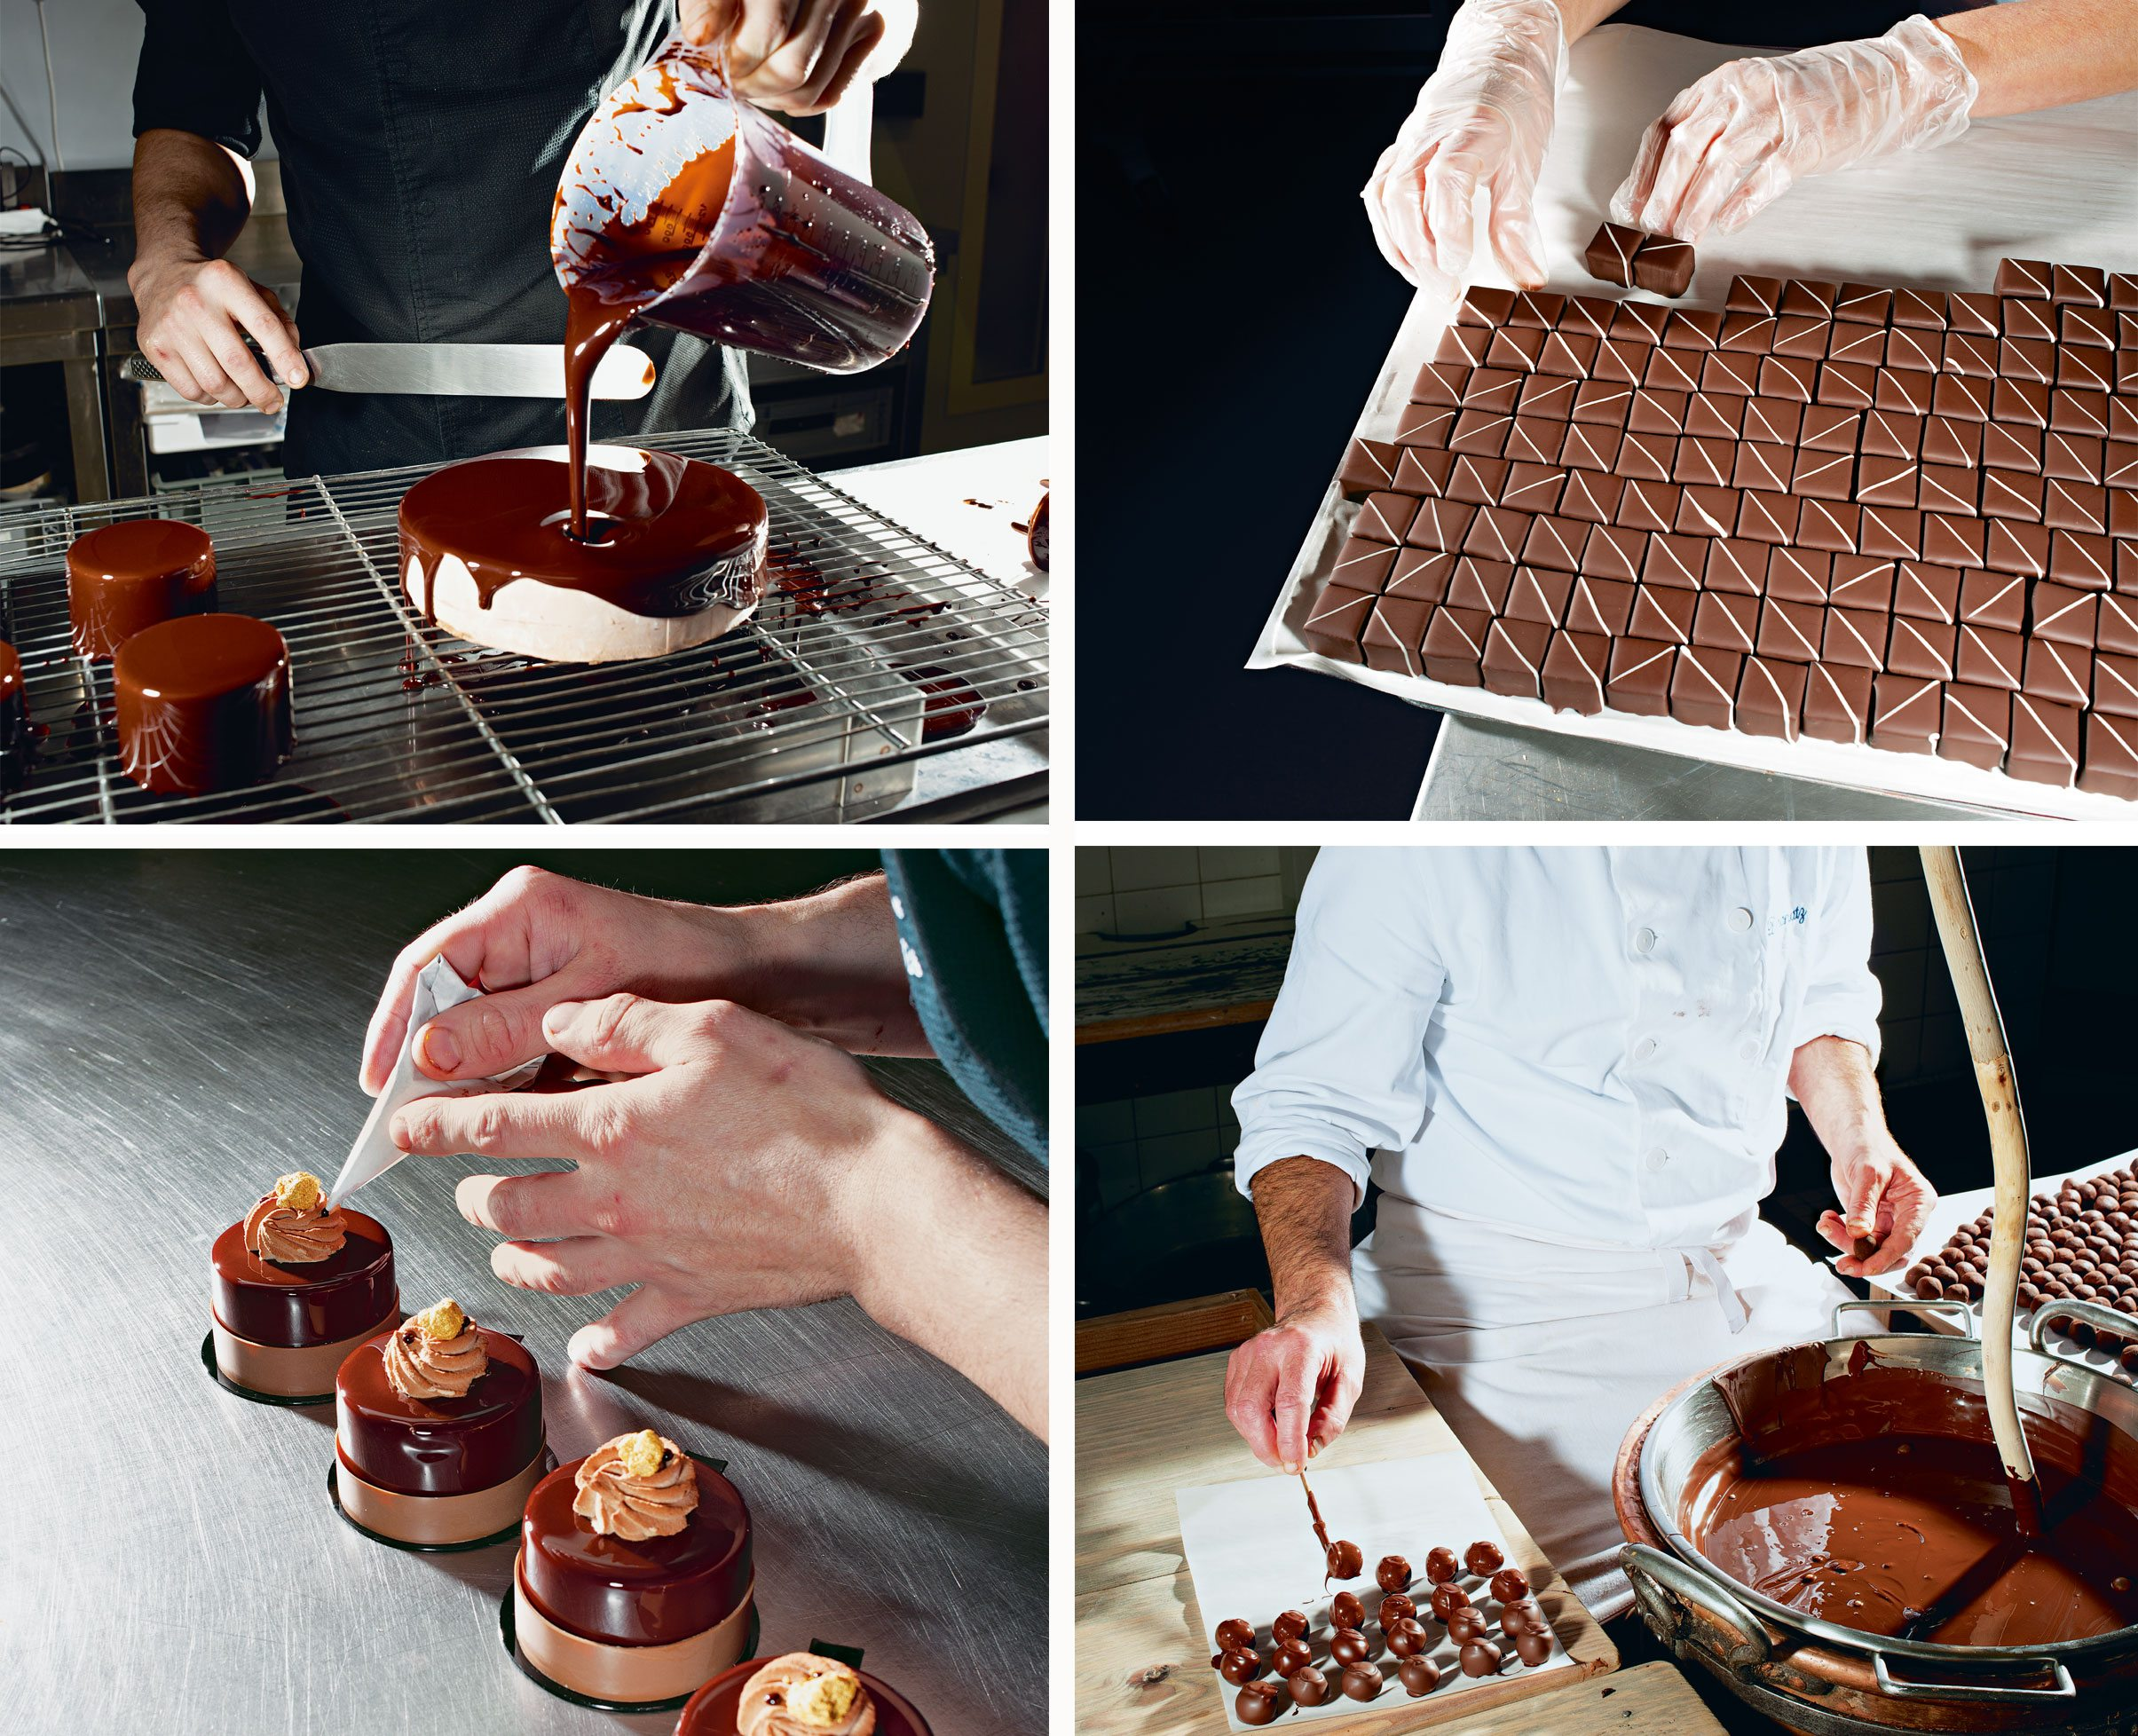 Chocolate glaze pours from a pitcher to coat a cake at Maison Pariès (top left); Bonbon banane confections fill a tray at L'Atelier du Chocolat (top right); Pirouette pastries receive final touches at Maison Pariès (bottom left); Master chocolatier Denis Ortali dips balls of ganache into liquid chocolate at Daranatz (bottom right). Photos: Brian Finke